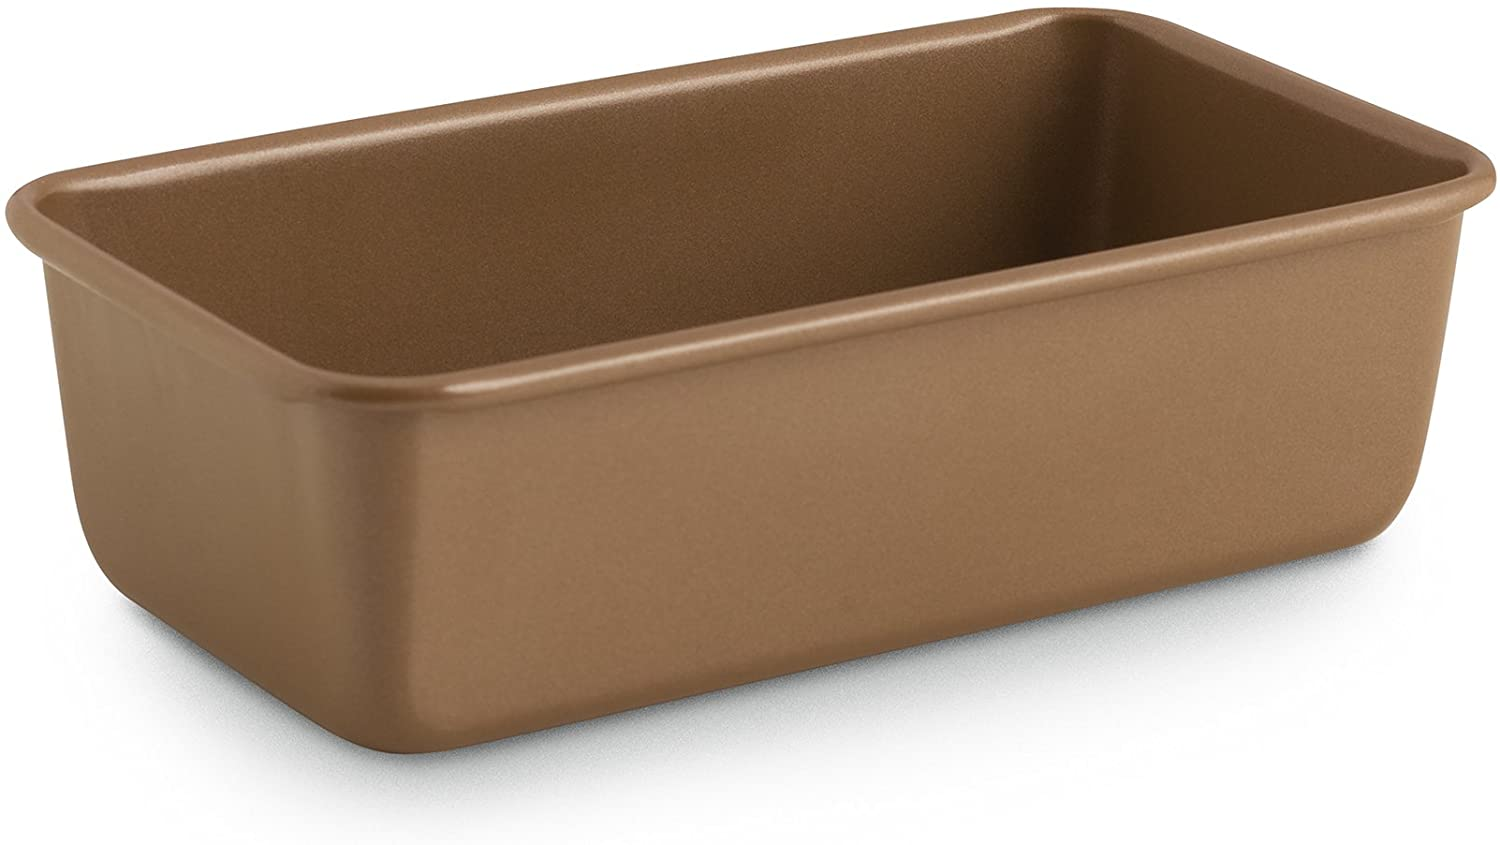 Calphalon Nonstick Bakeware, Loaf Pan, 5 inch by 8 inch